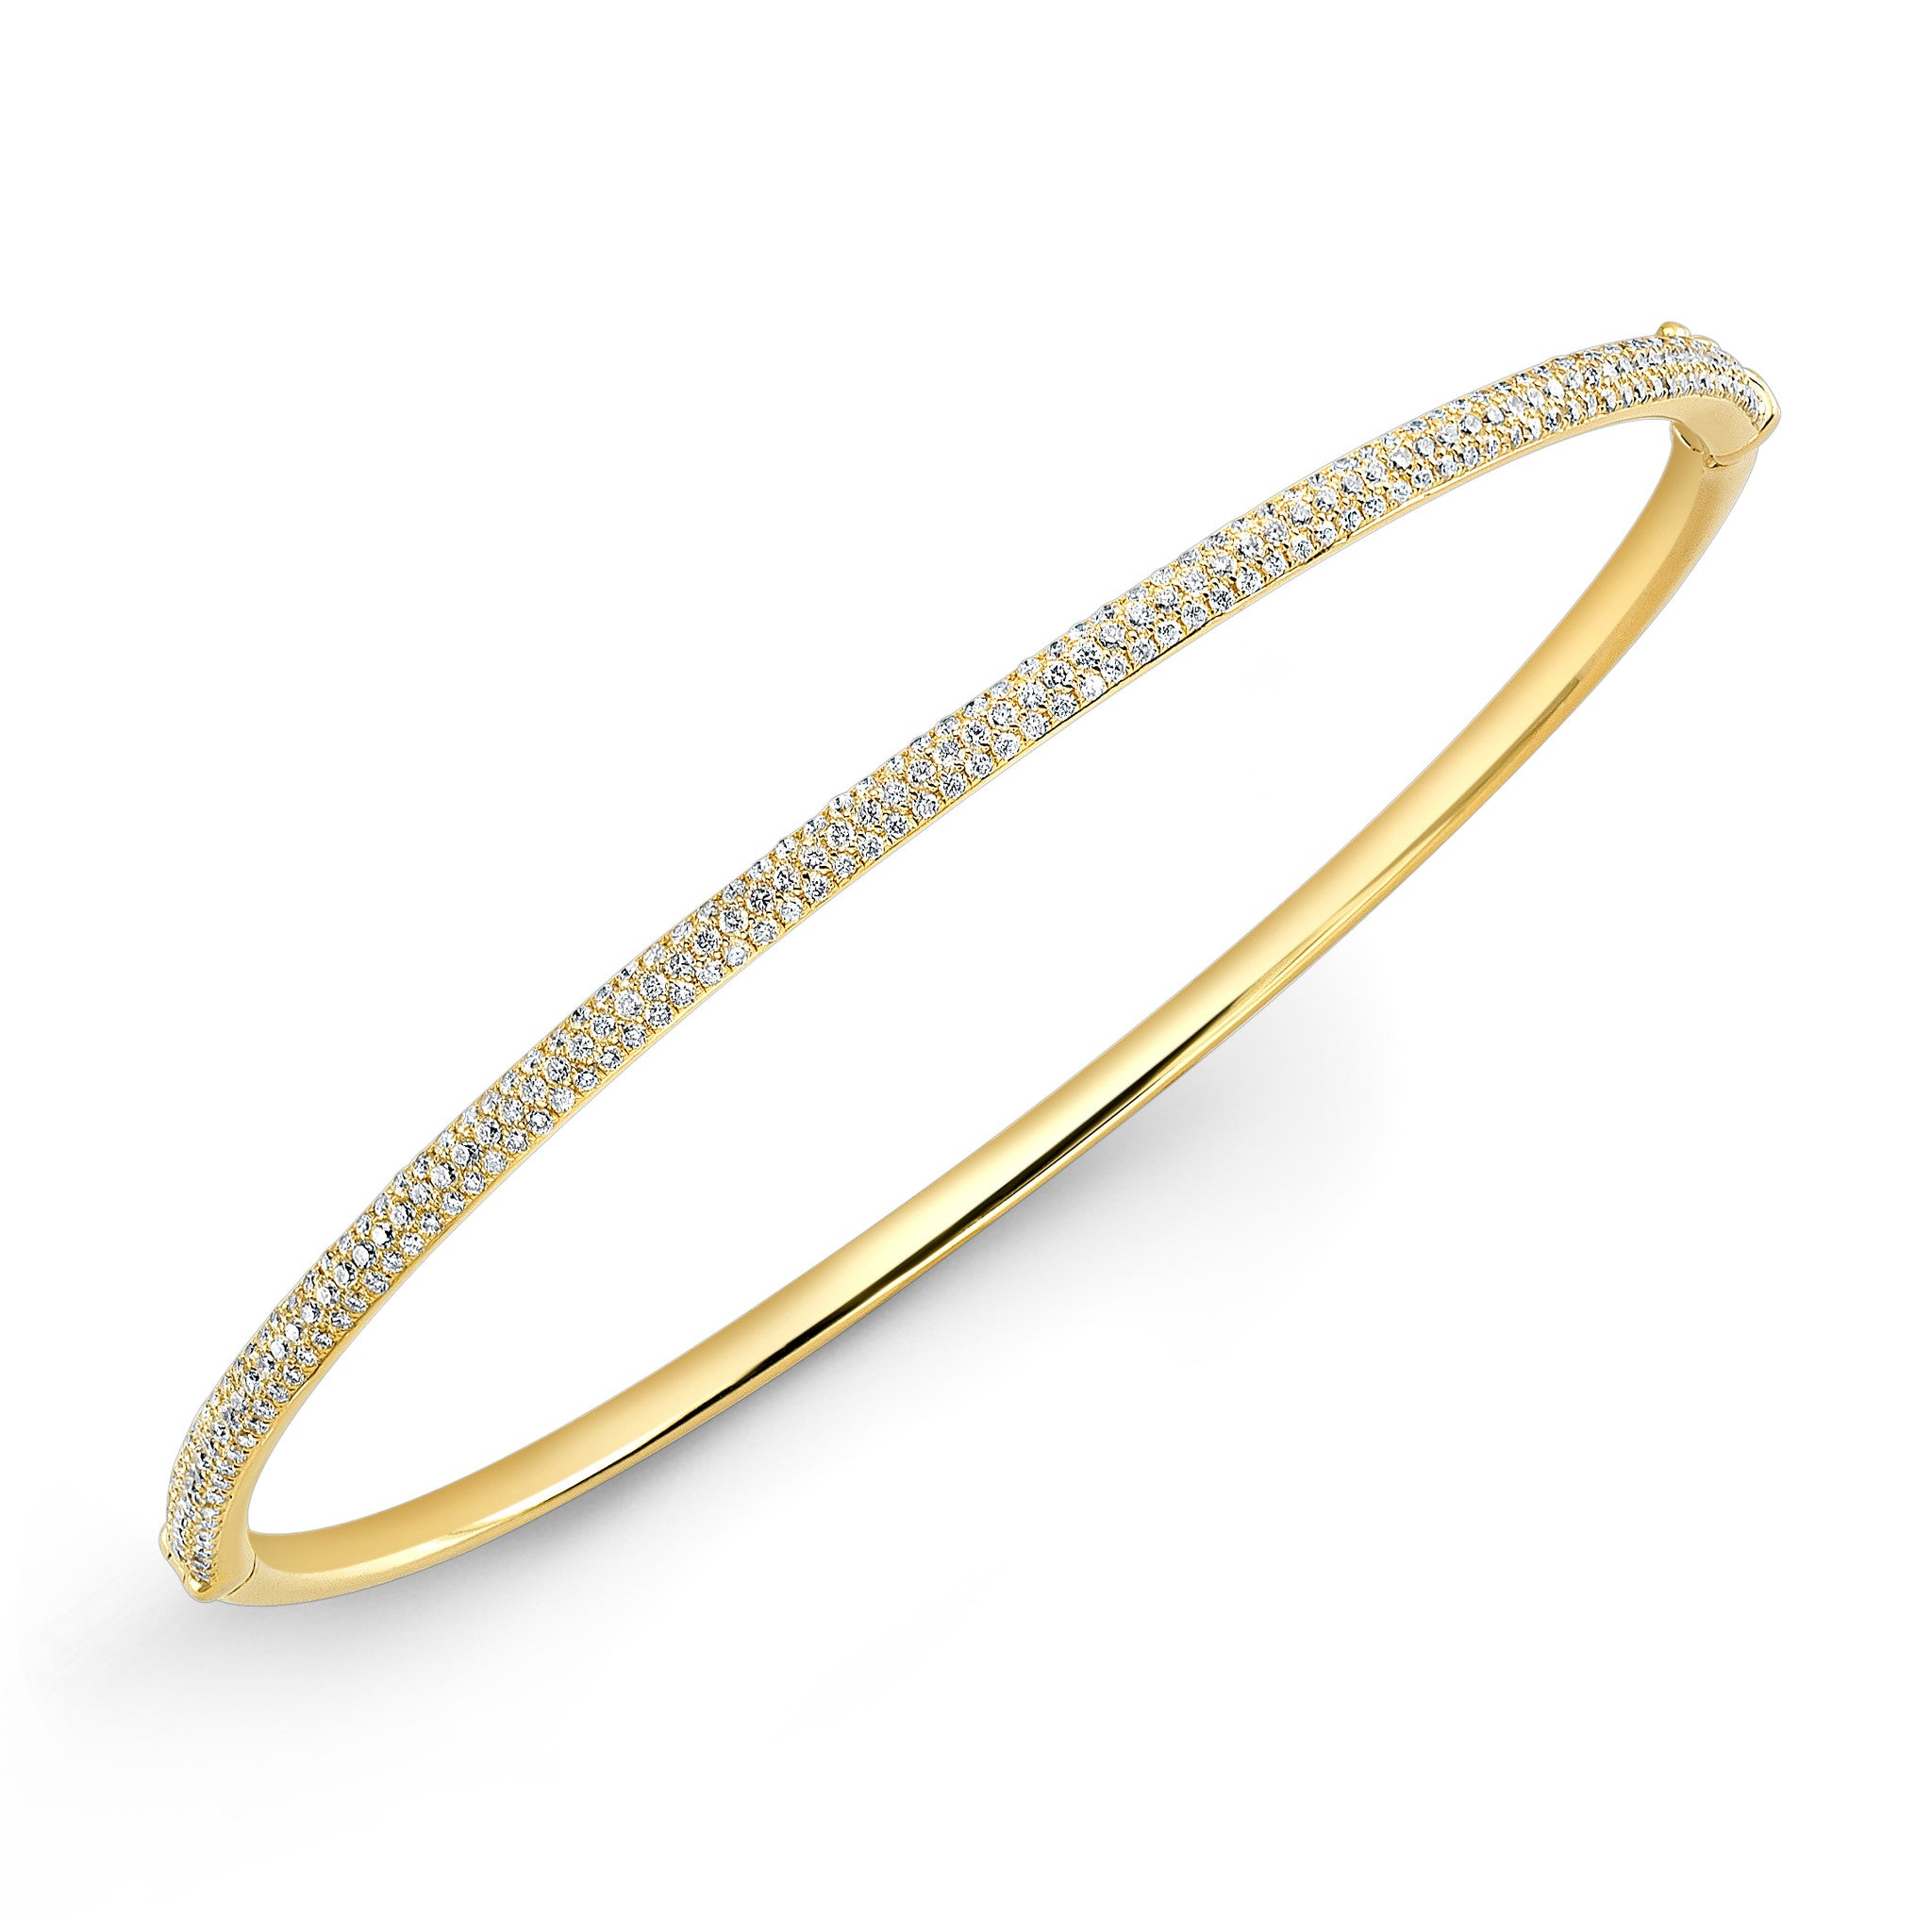 pave in nl diamond jewelry cuff rg bangles fdcmj with bracelets bracelet gold white rose bangle square open